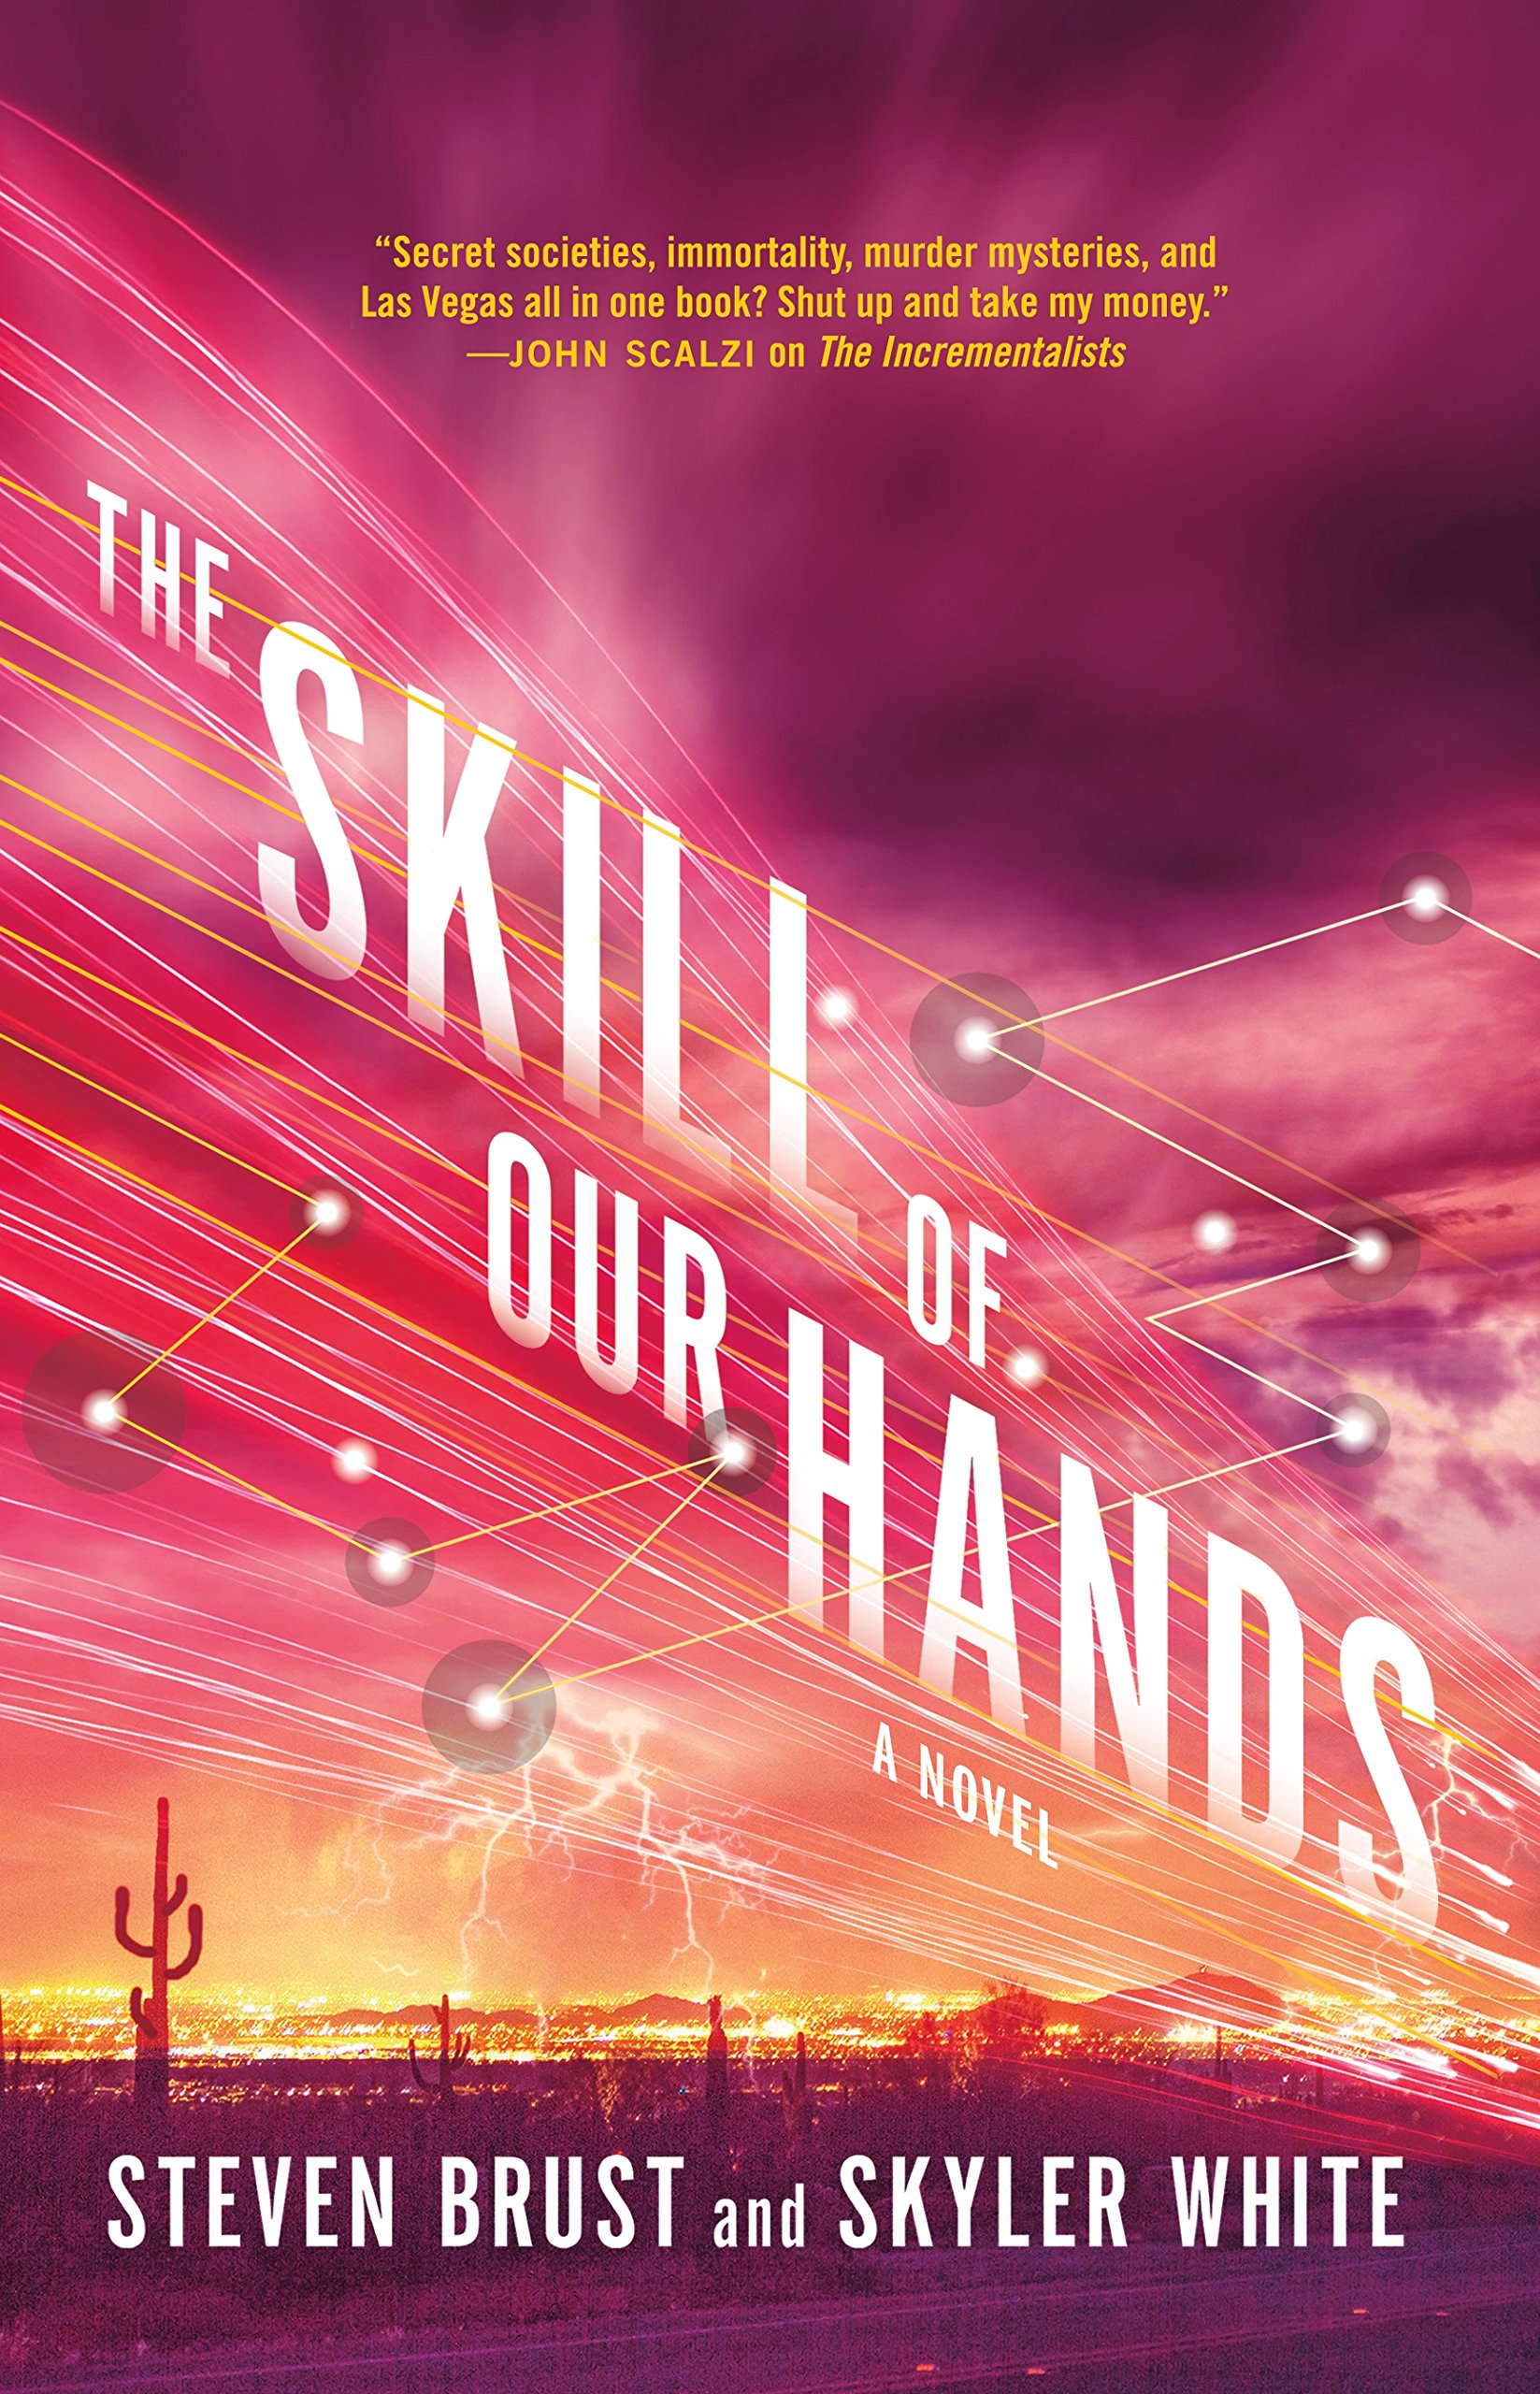 The Skill of Our Hands: A Novel (The Incrementalists) PDF